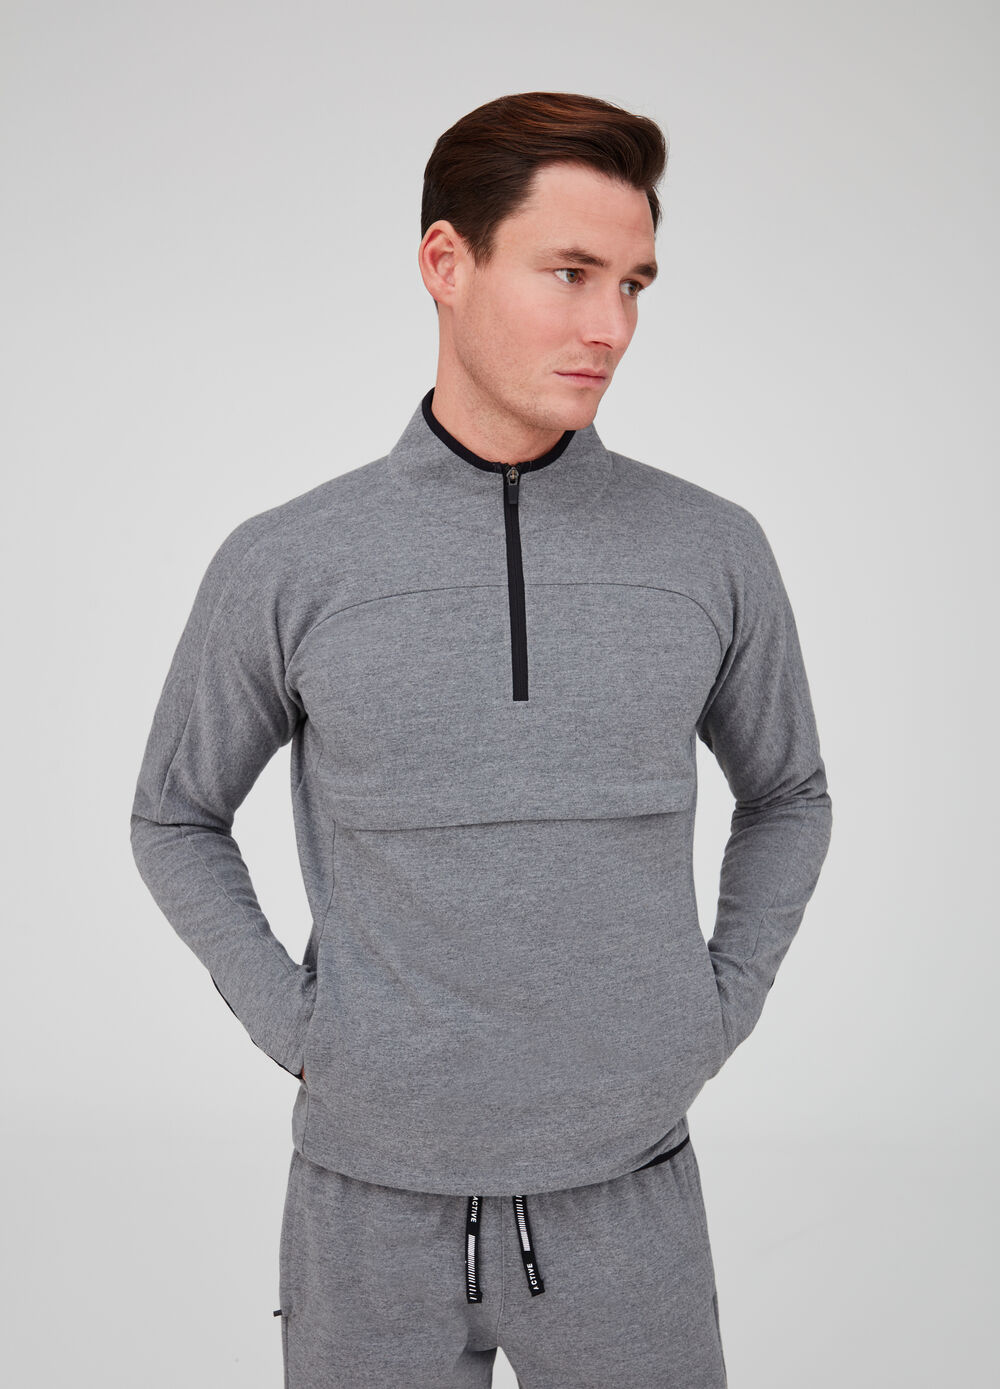 Gym sweatshirt with high neck, raglan sleeves and pockets